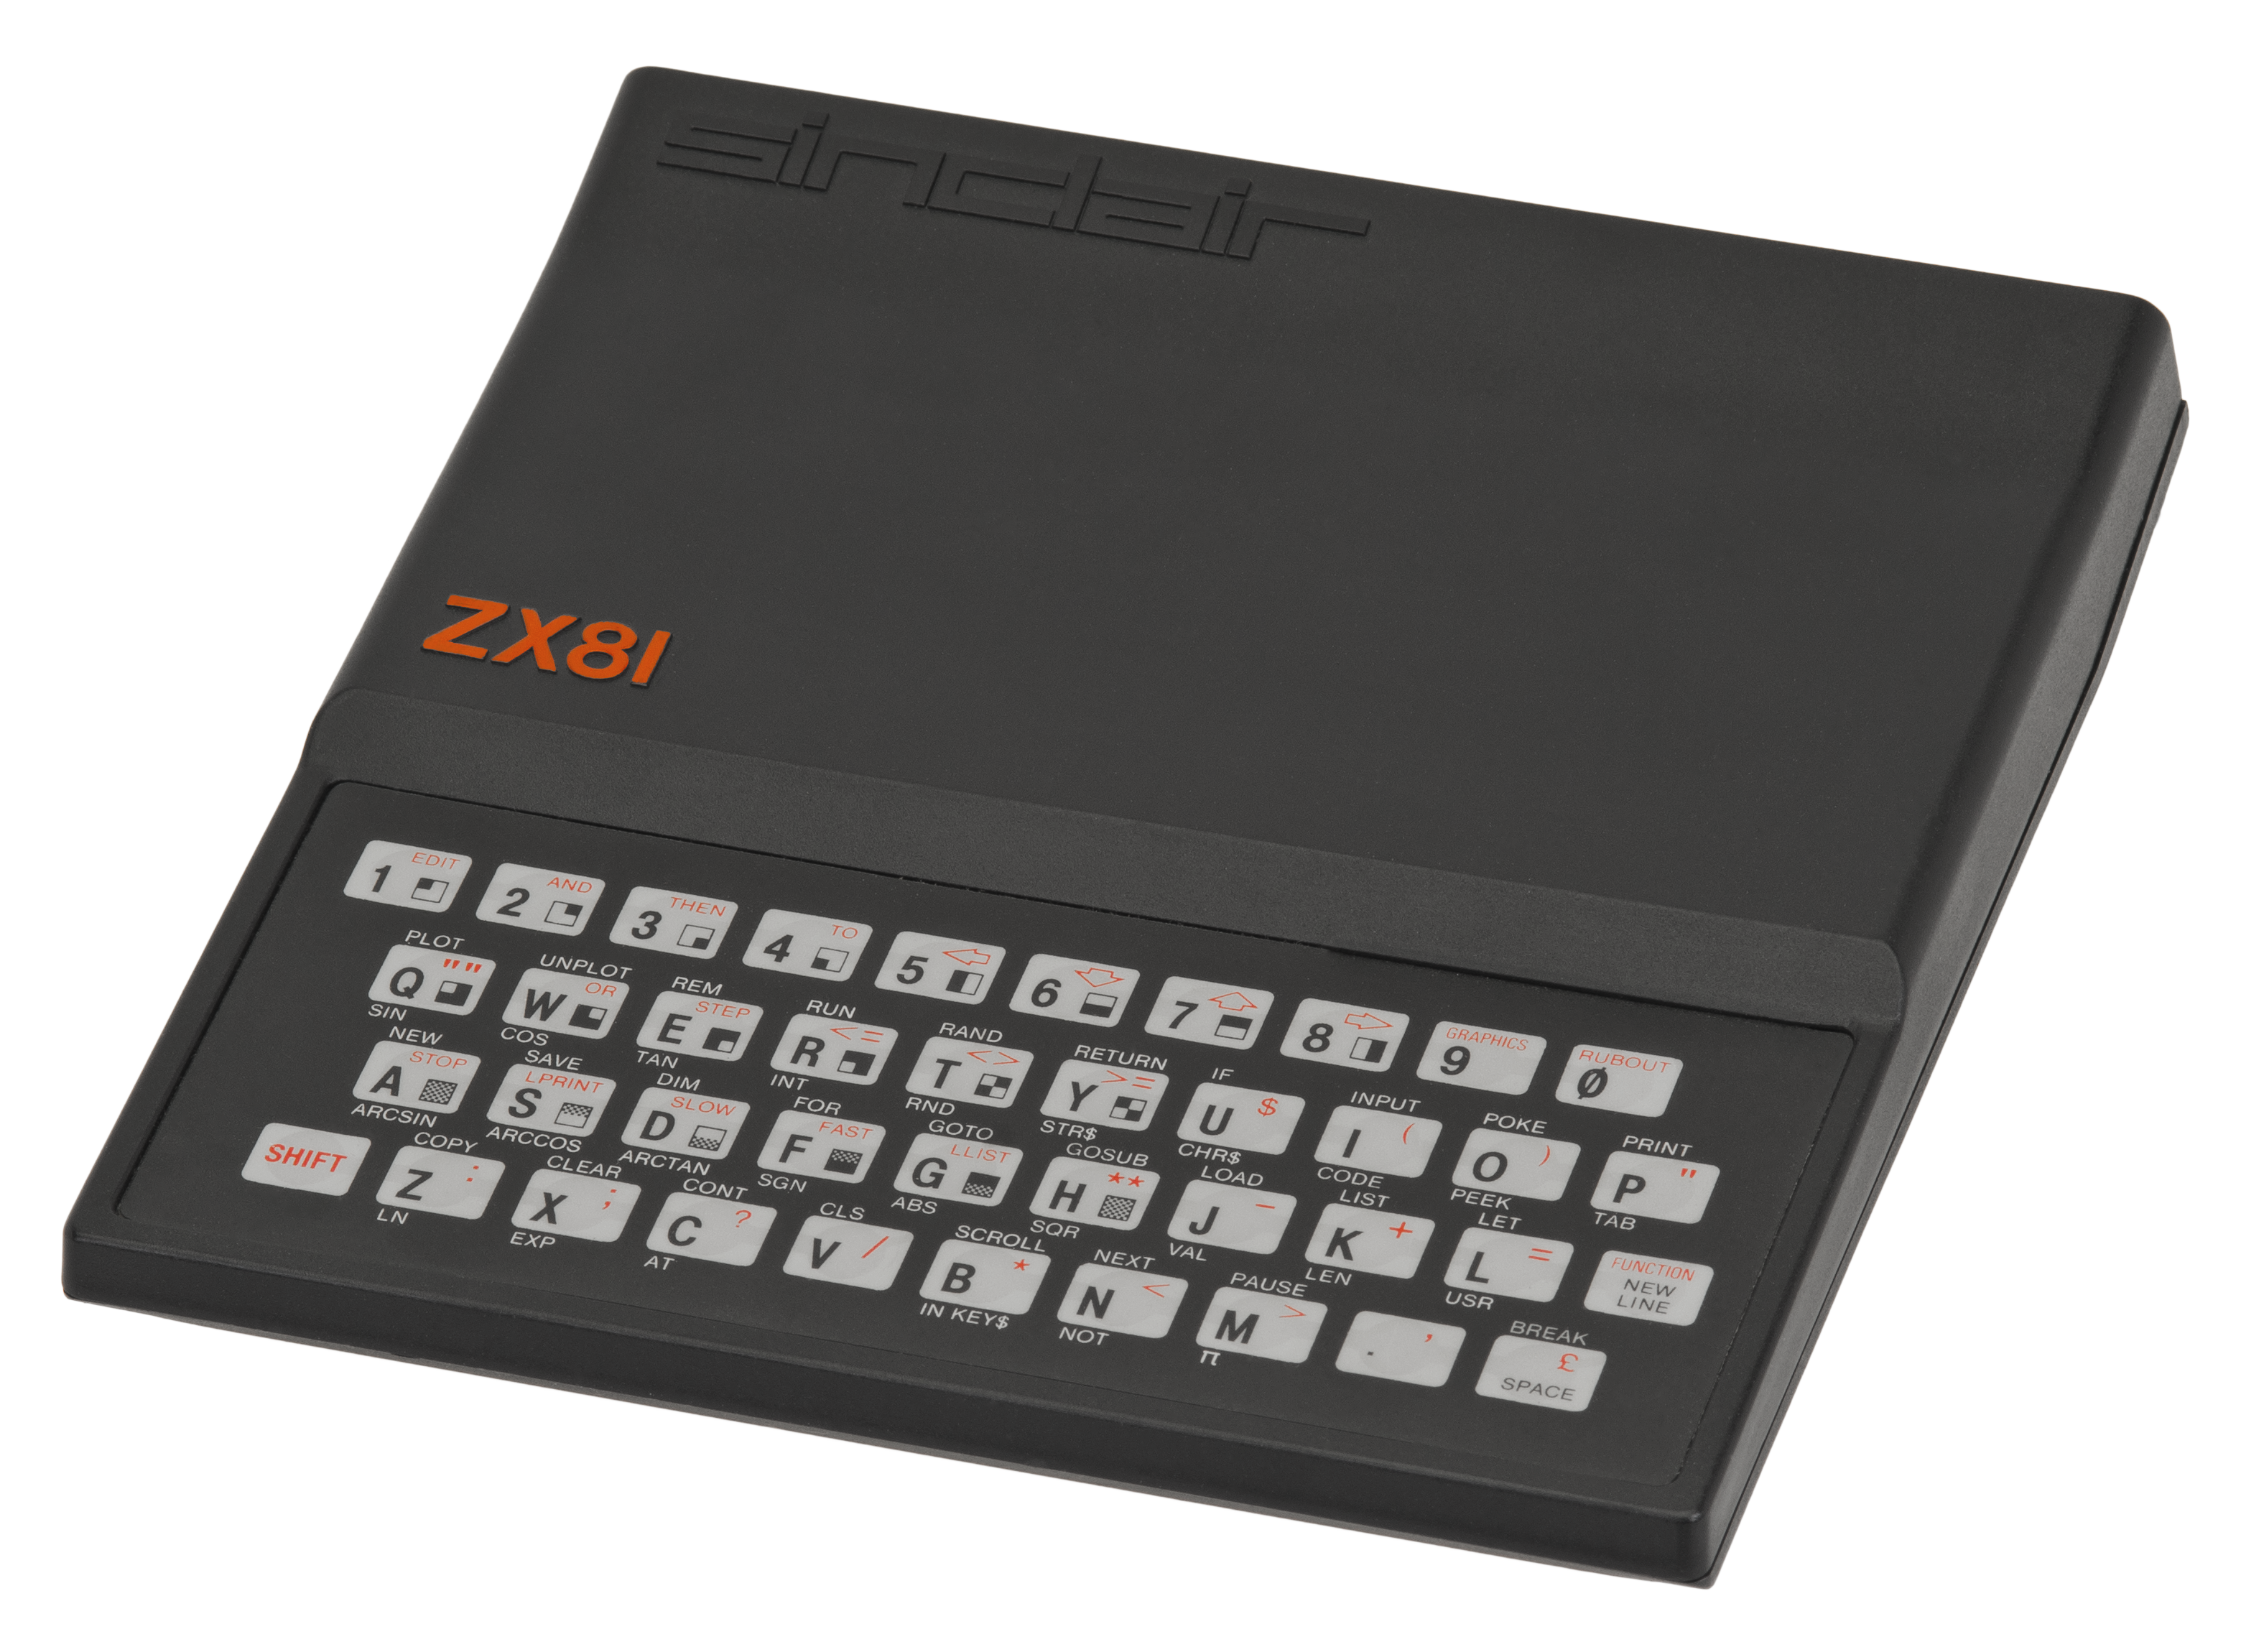 https://upload.wikimedia.org/wikipedia/commons/8/8a/Sinclair-ZX81.png